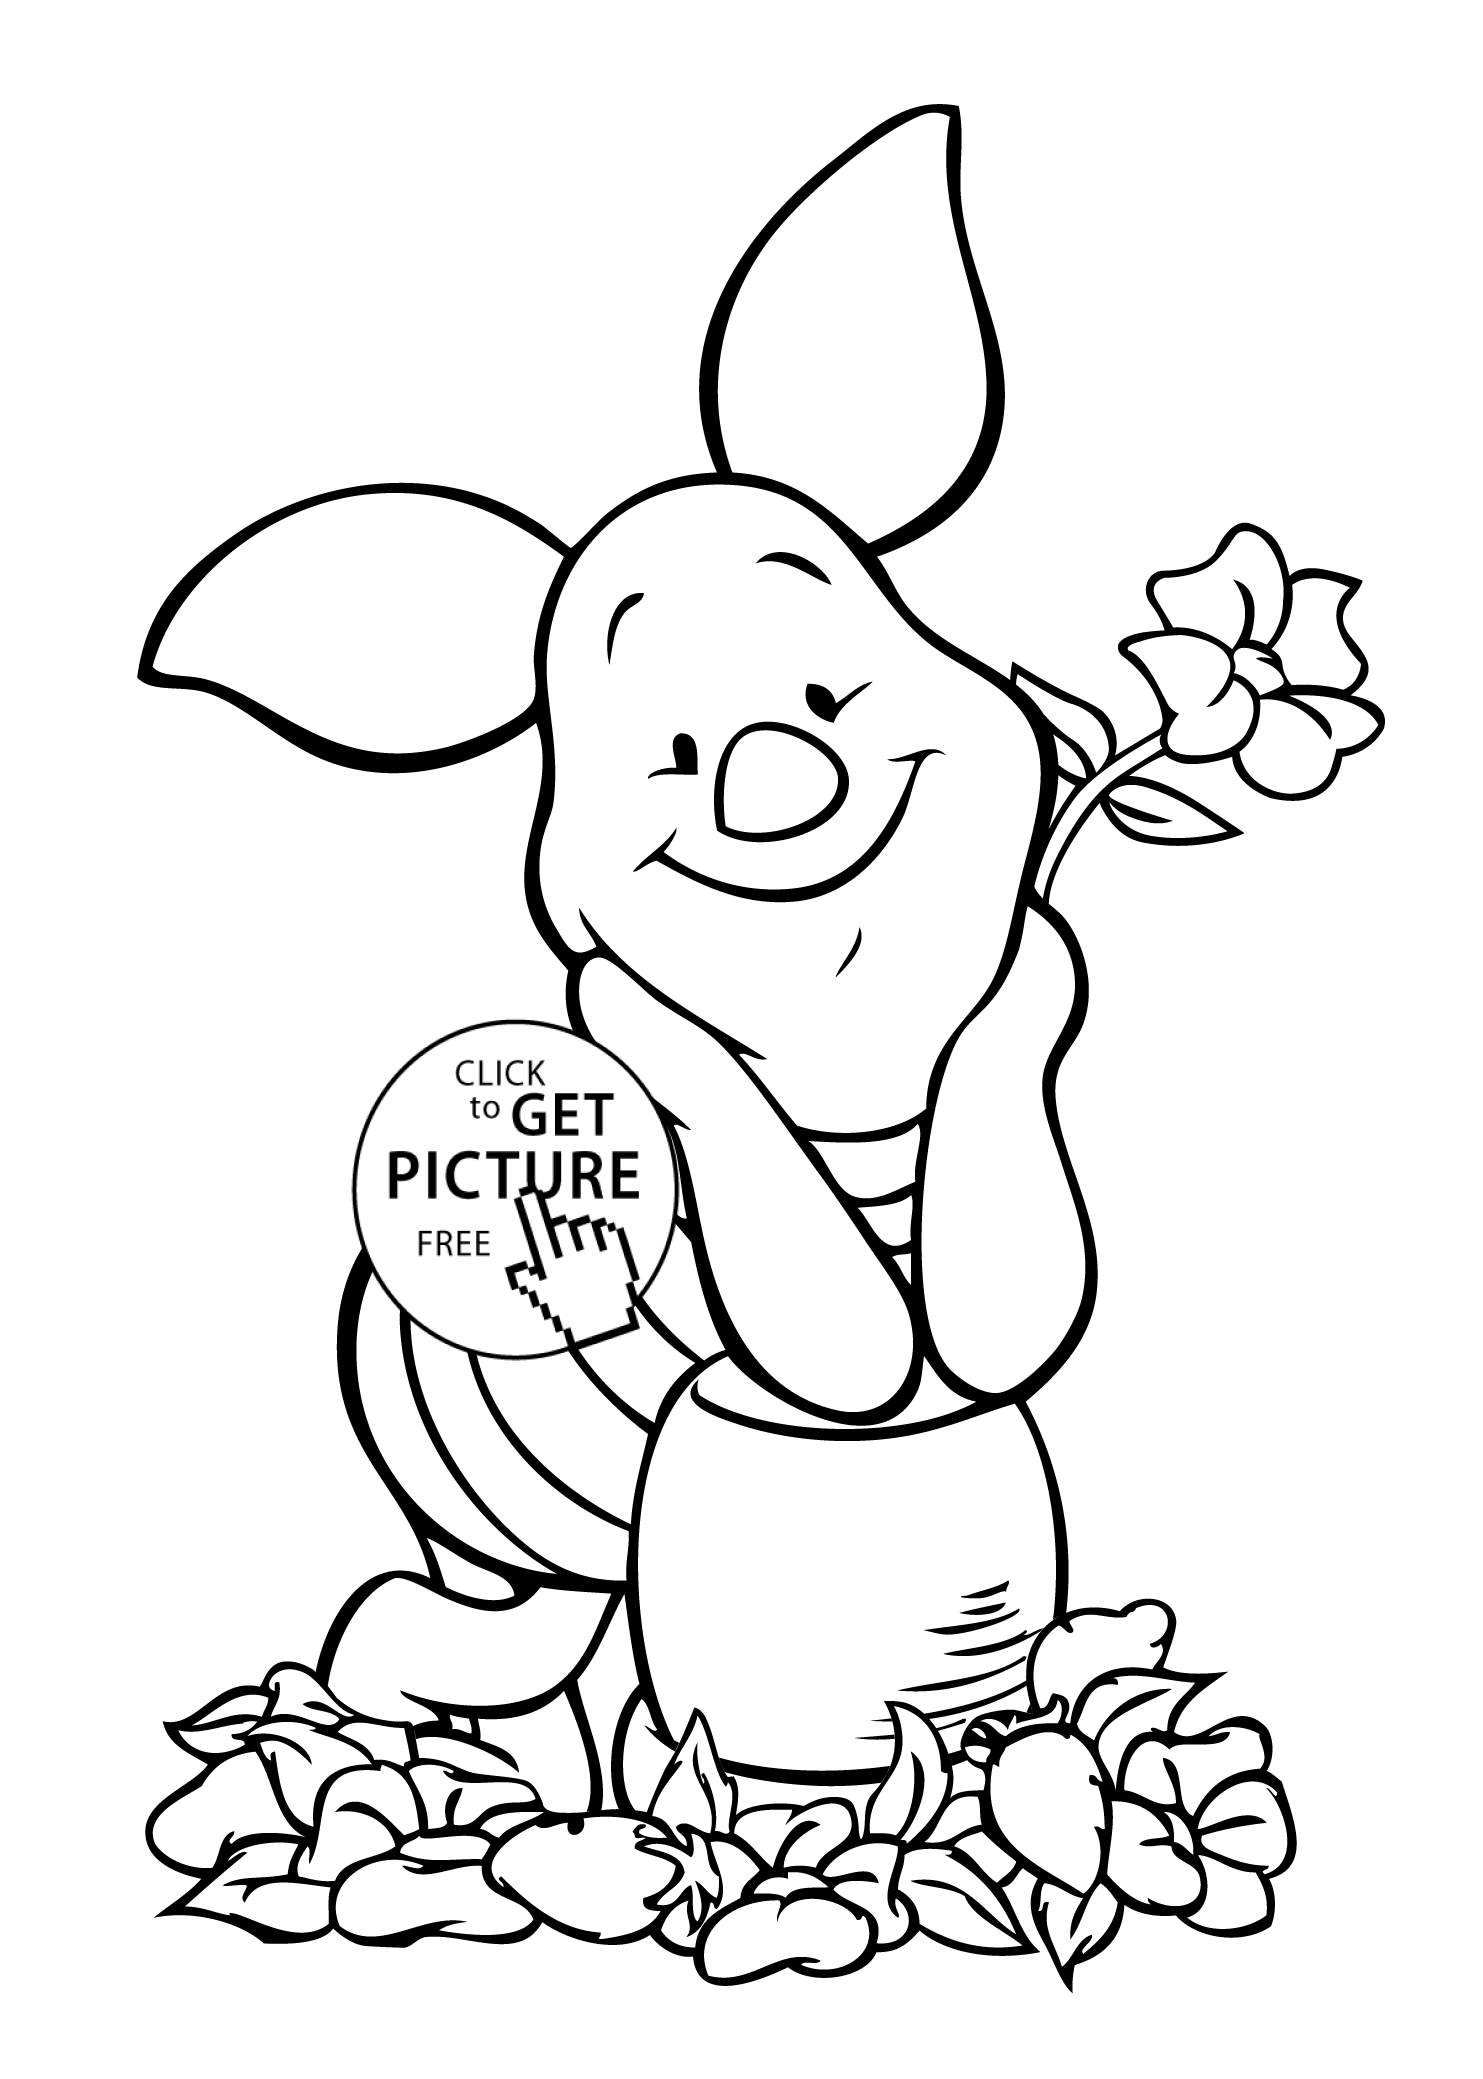 Winnie pooh piglet coloring page for kids free printable for Piglet coloring pages